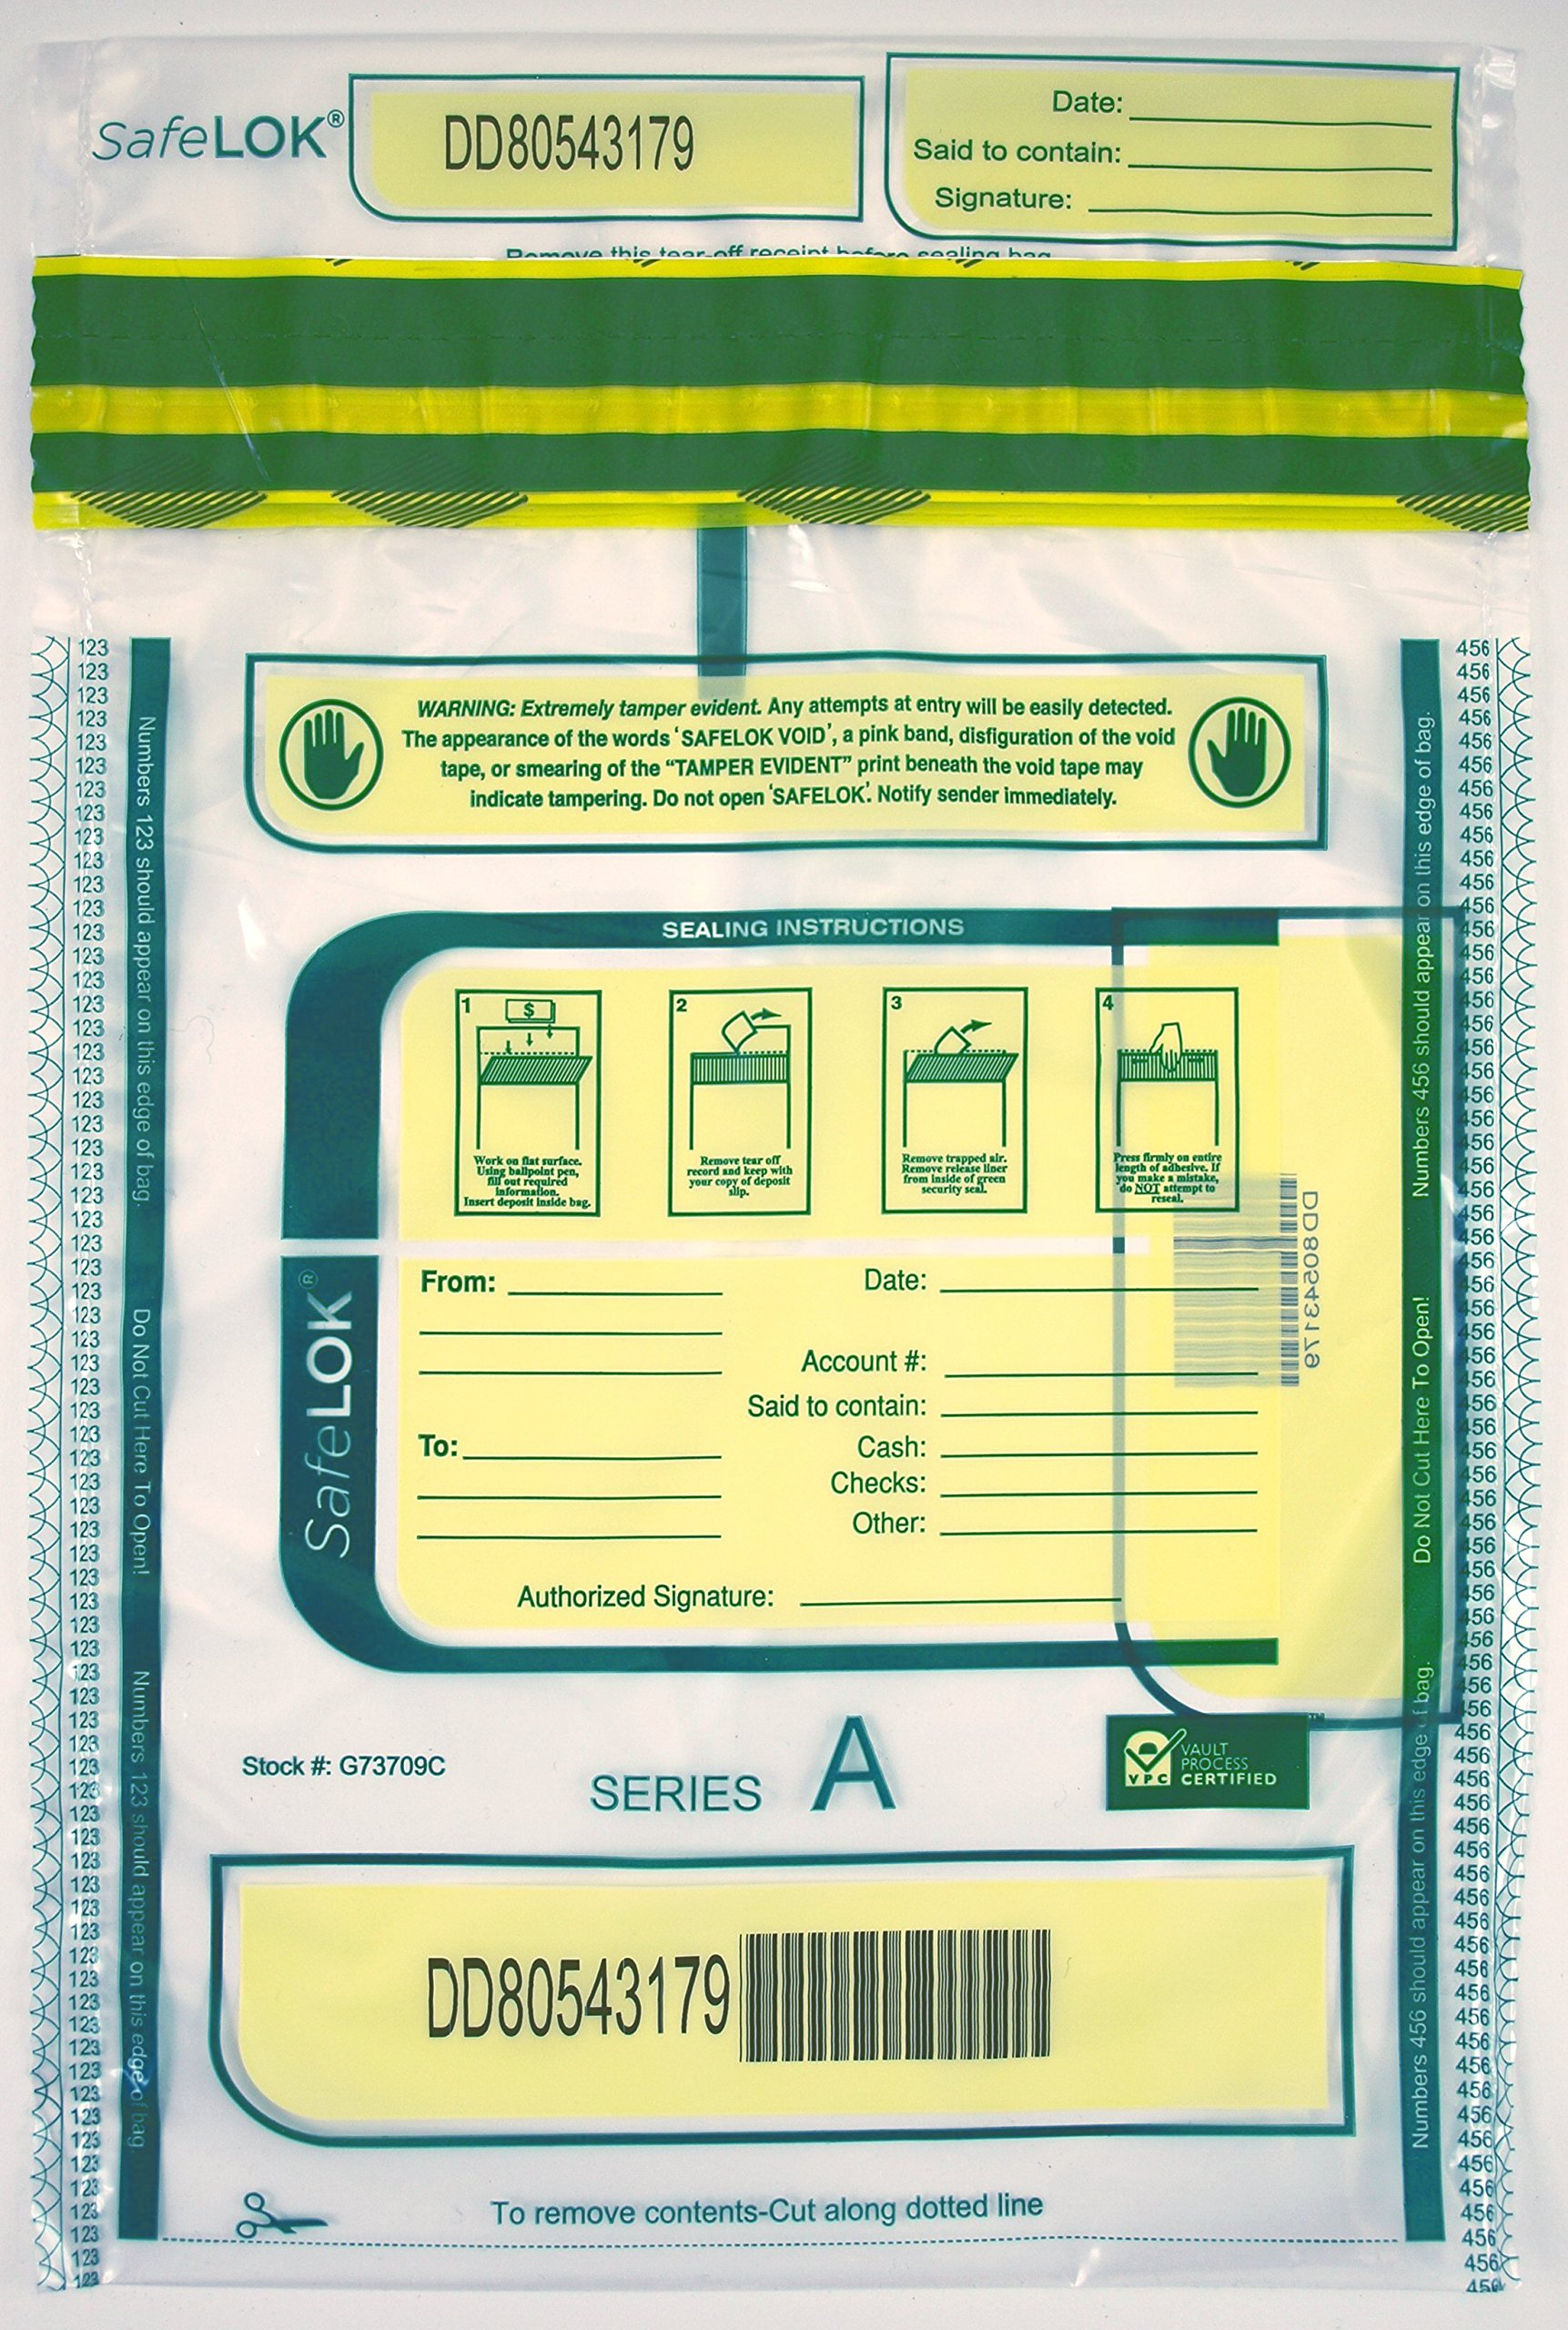 9 x 12 SafeLok, clear, 100 Deposit Bags by Control Group